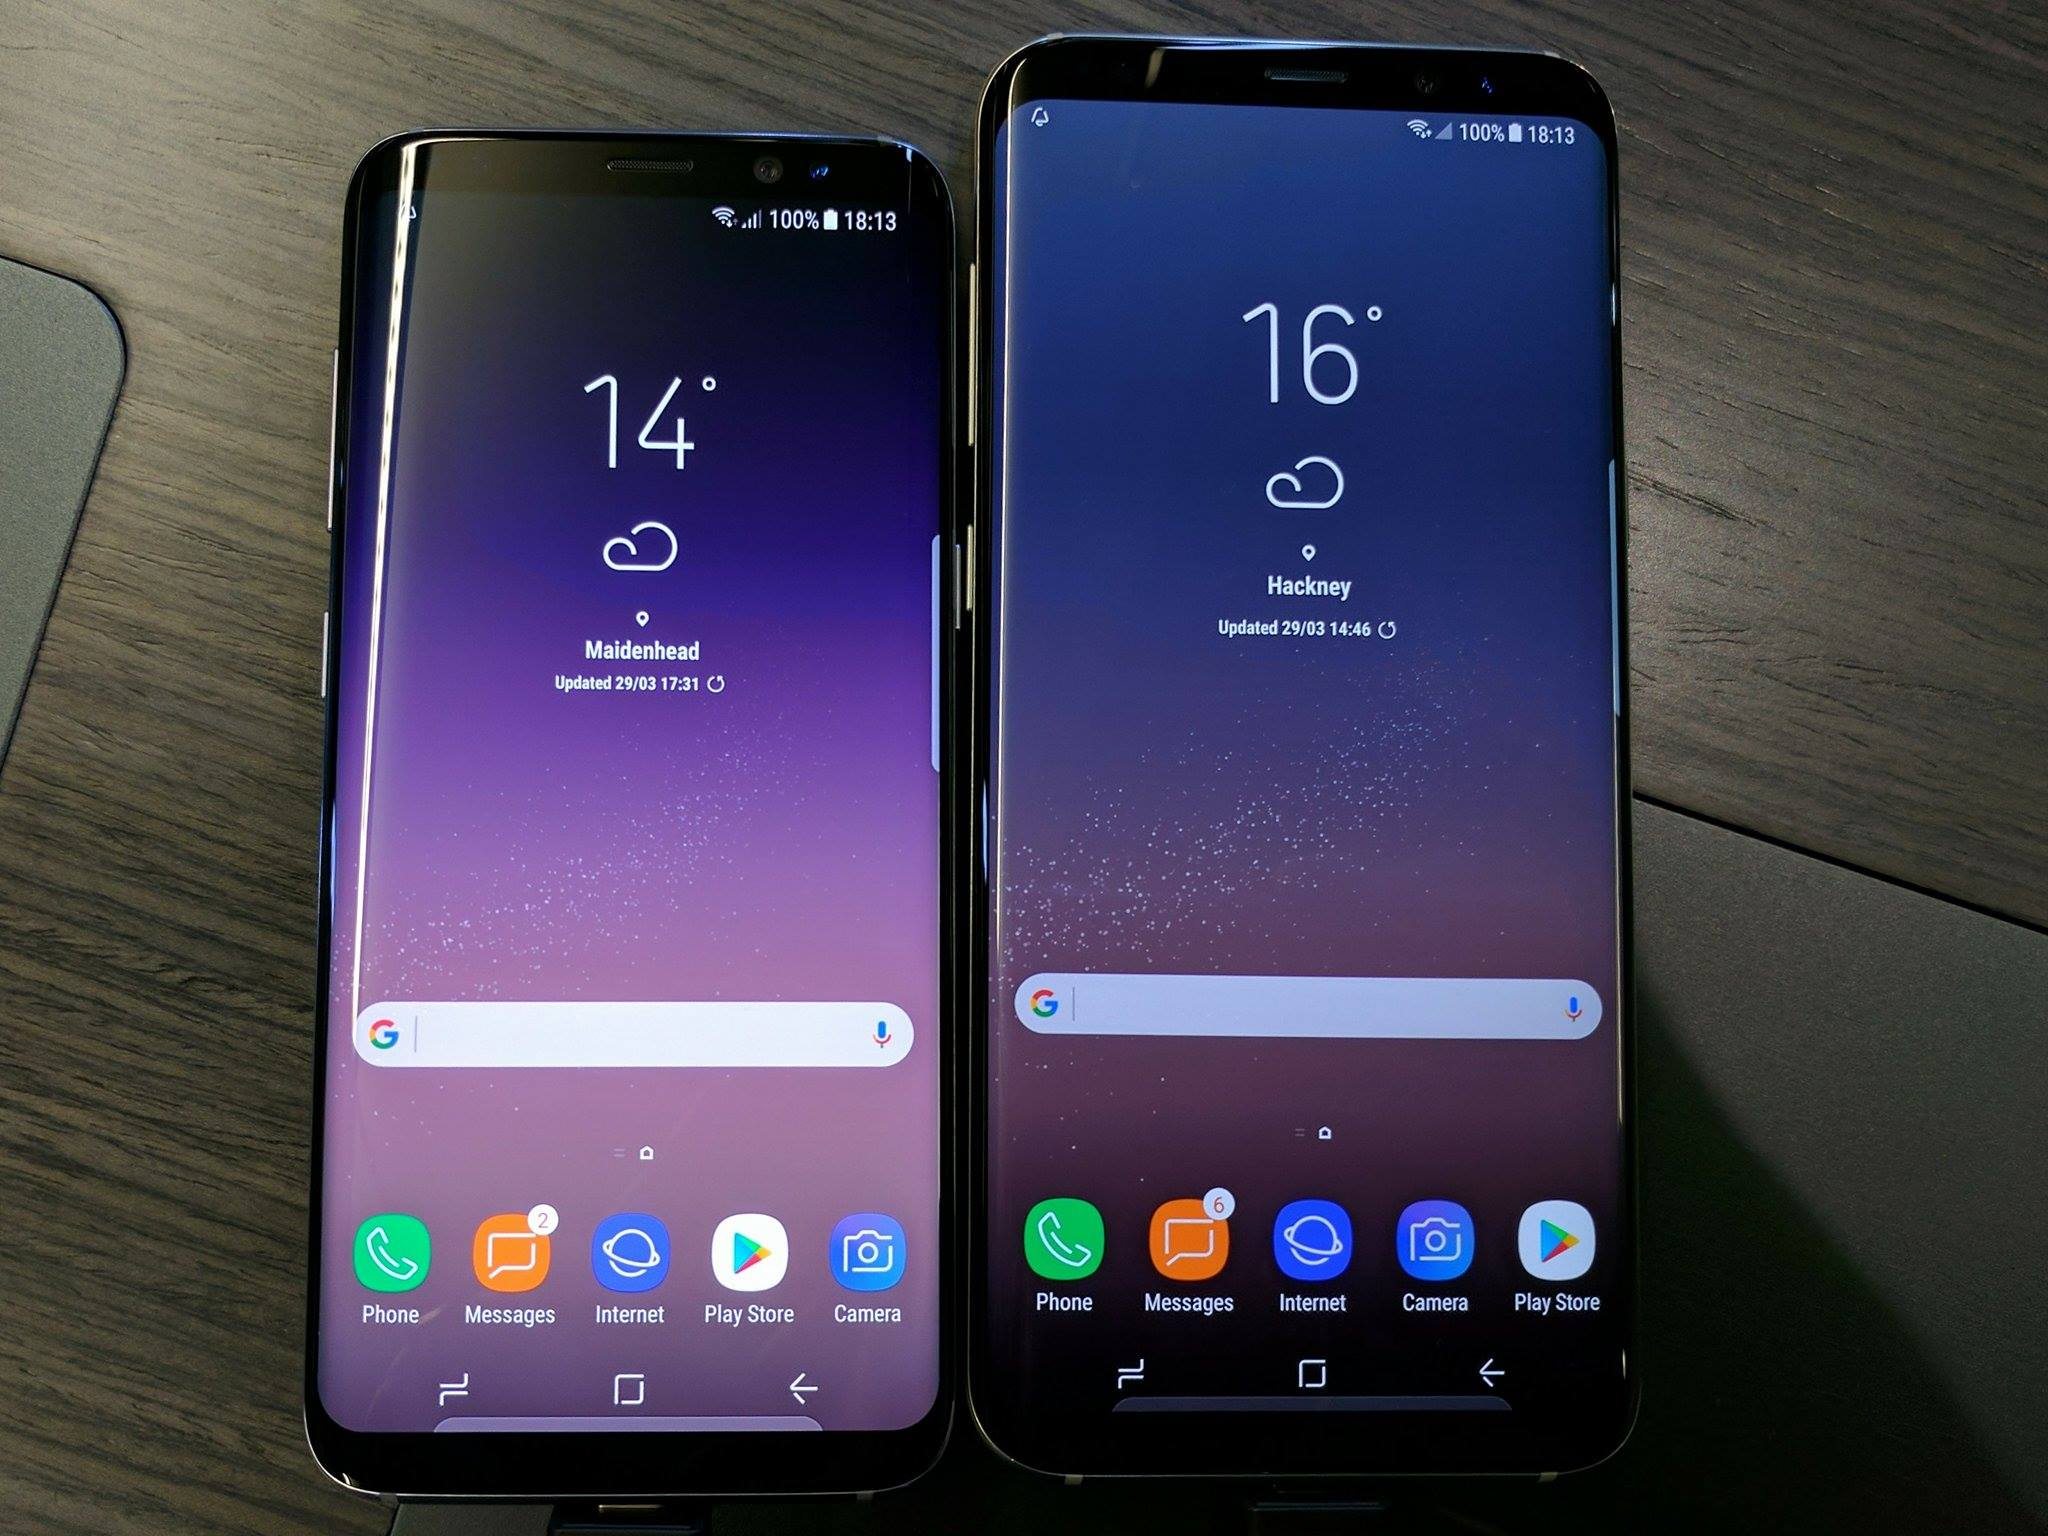 The Galaxy S8 and S8+